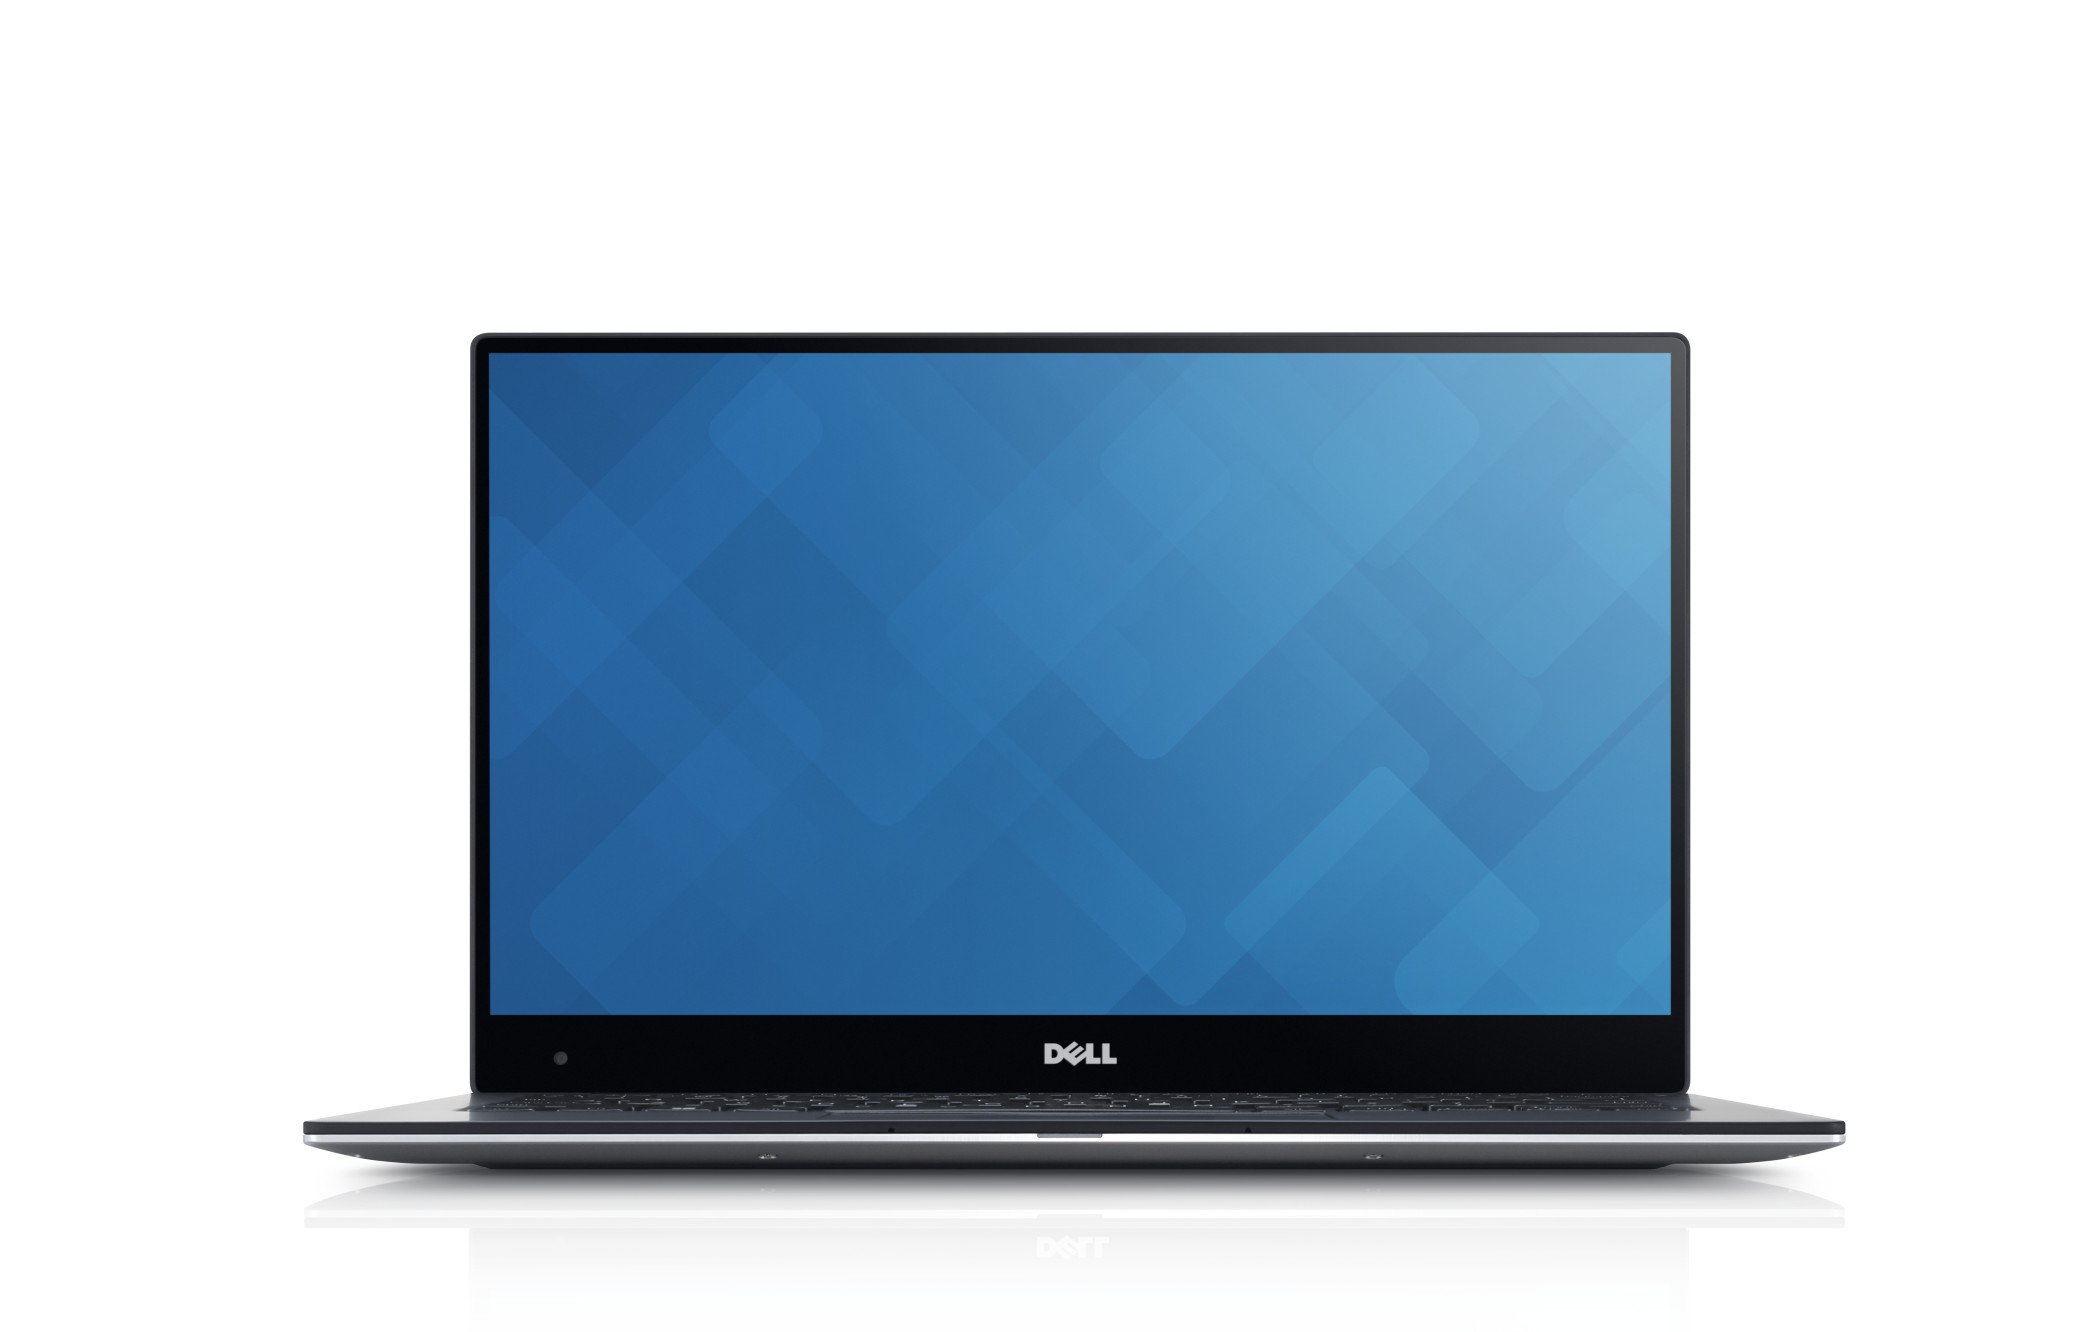 dell xps 13 9360 user manual